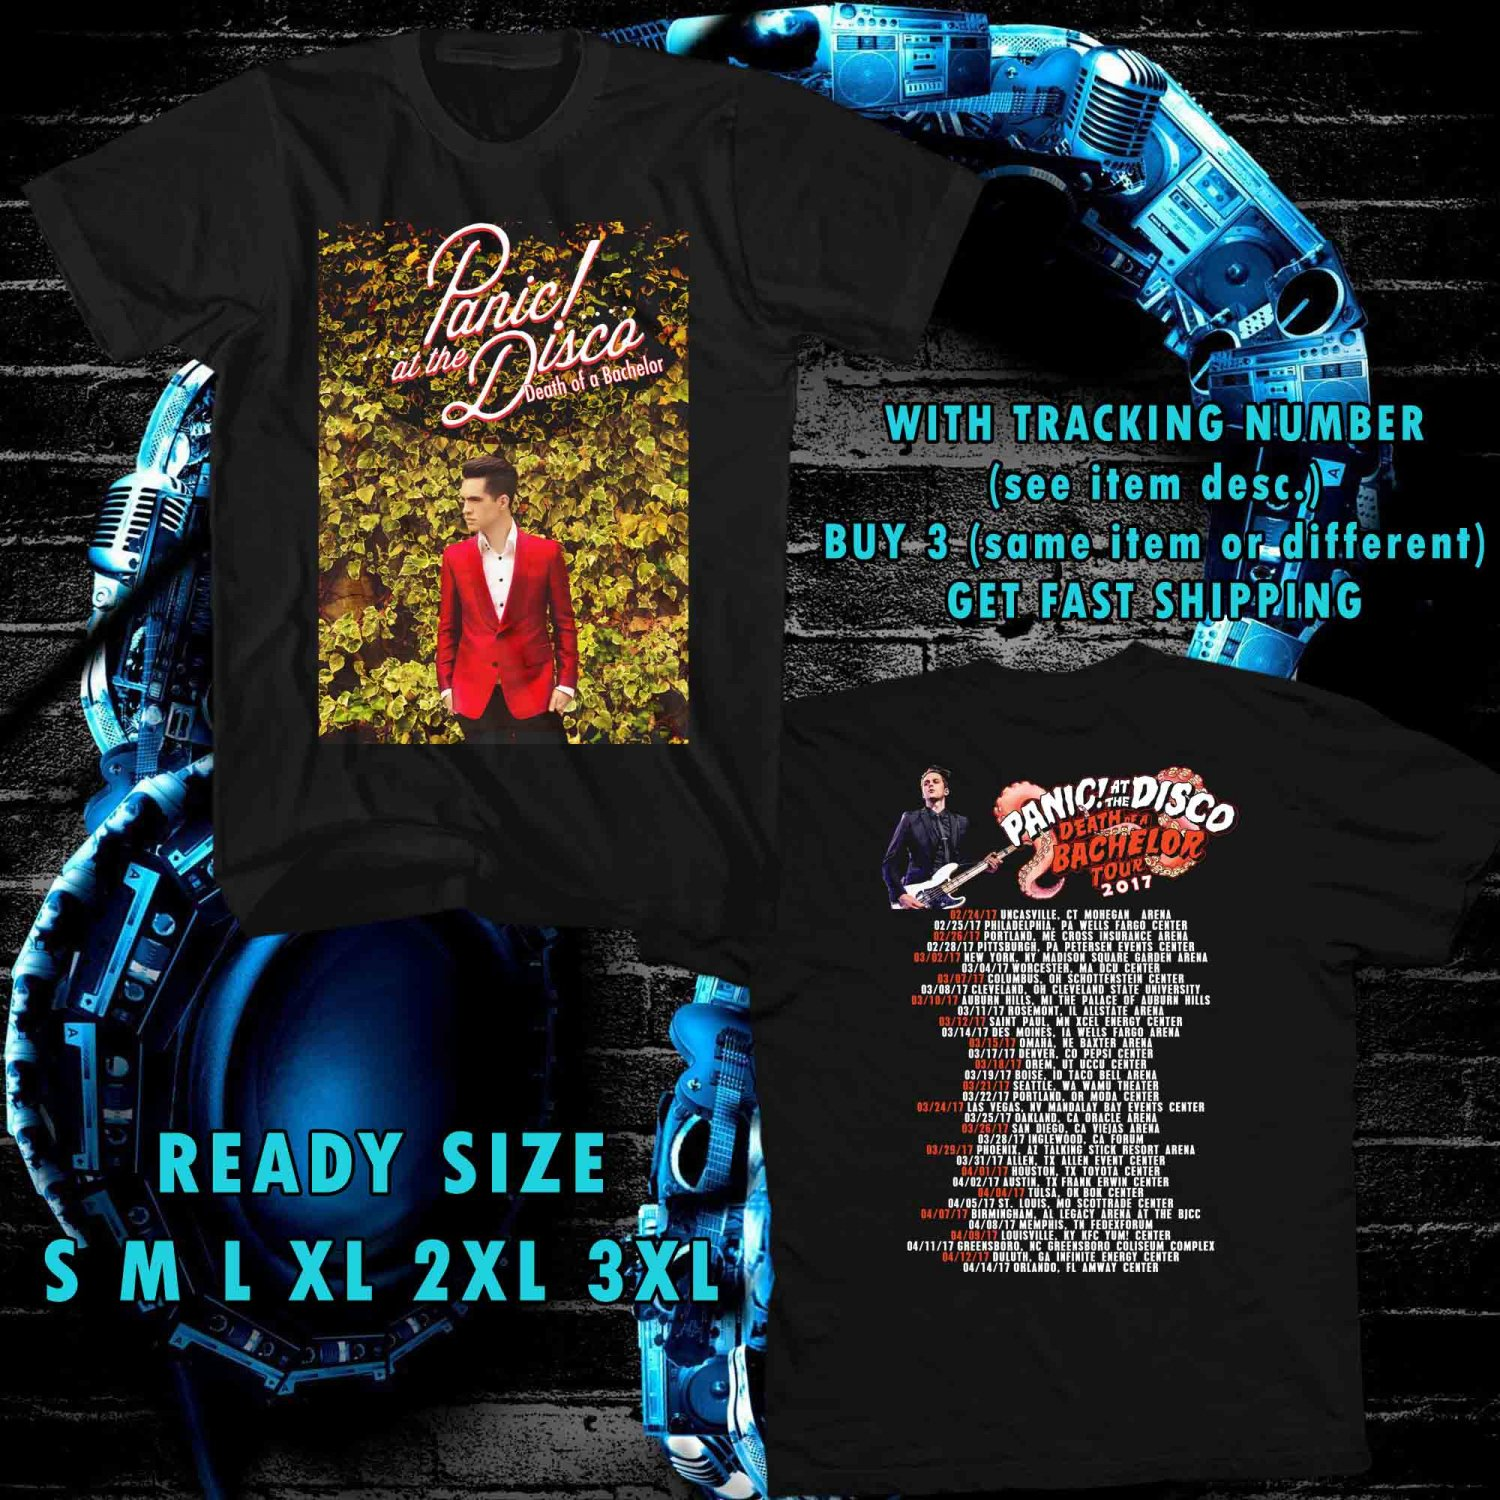 WOW PANIC AT THE DISCO DEATH OF BACHELOR TOUR 2017 BLACK TEE S-3XL ASTR 664